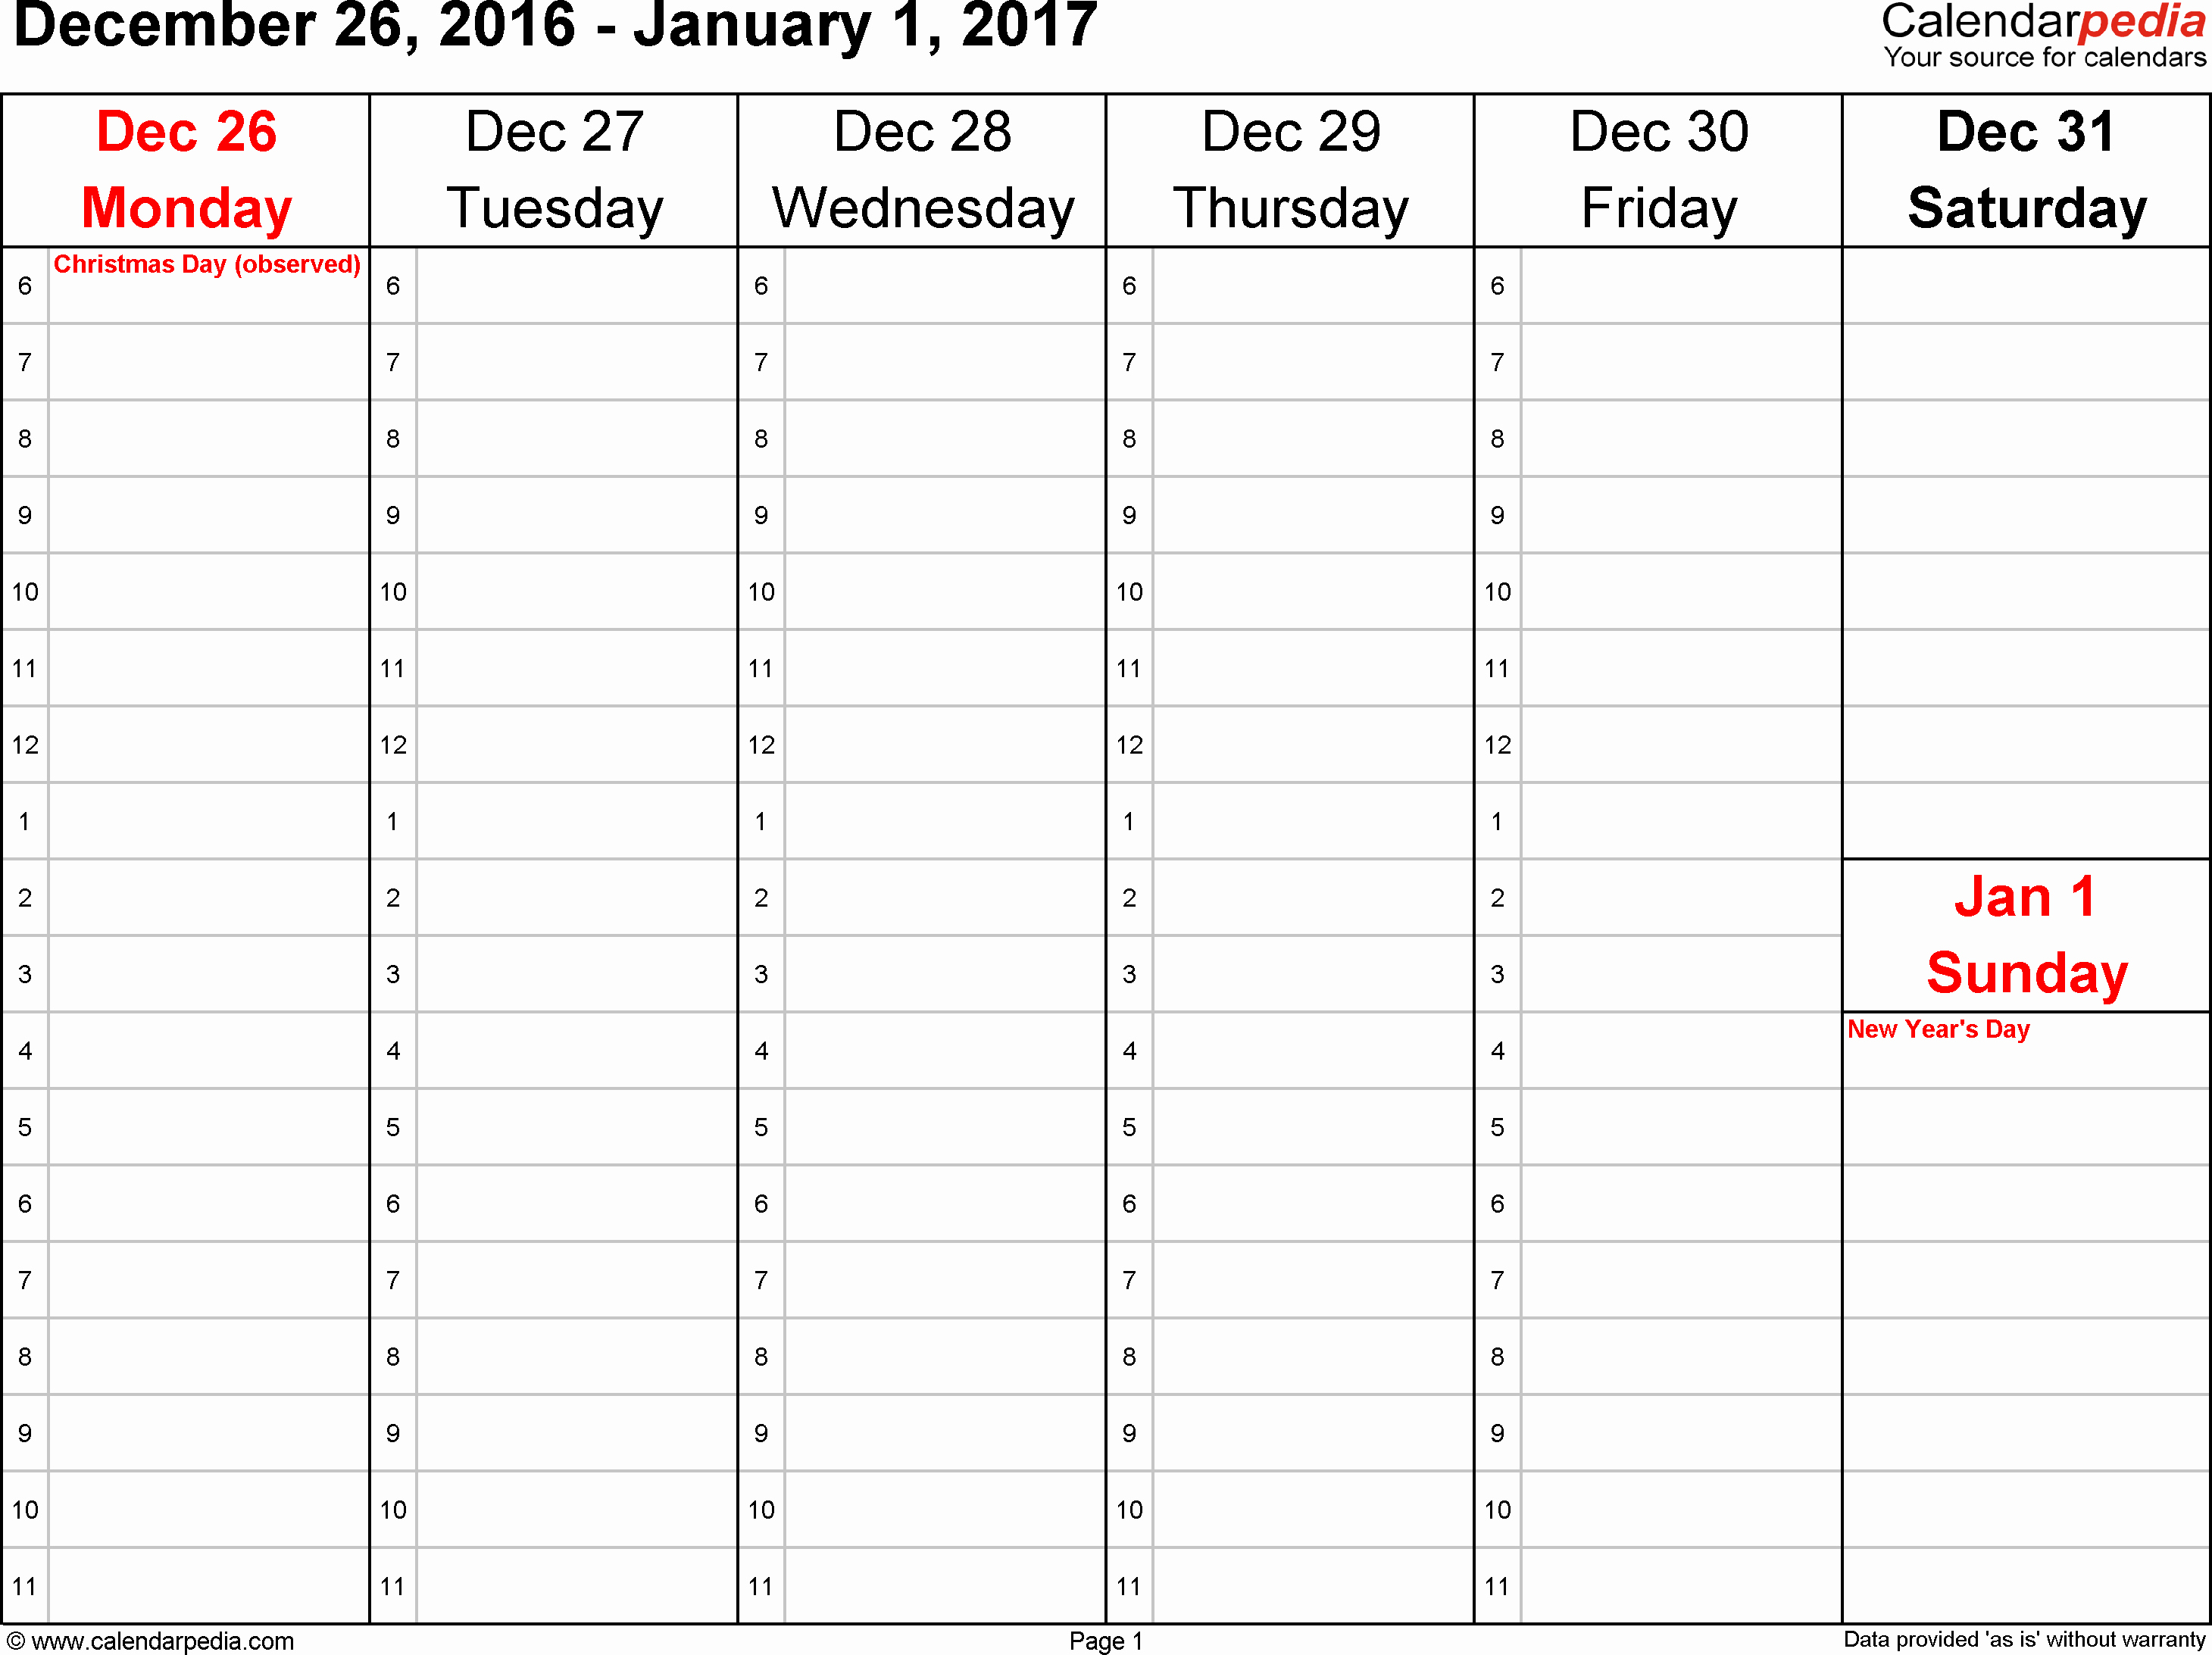 Weekly Calendar Template 2017 Lovely Weekly Calendar 2017 for Pdf 12 Free Printable Templates